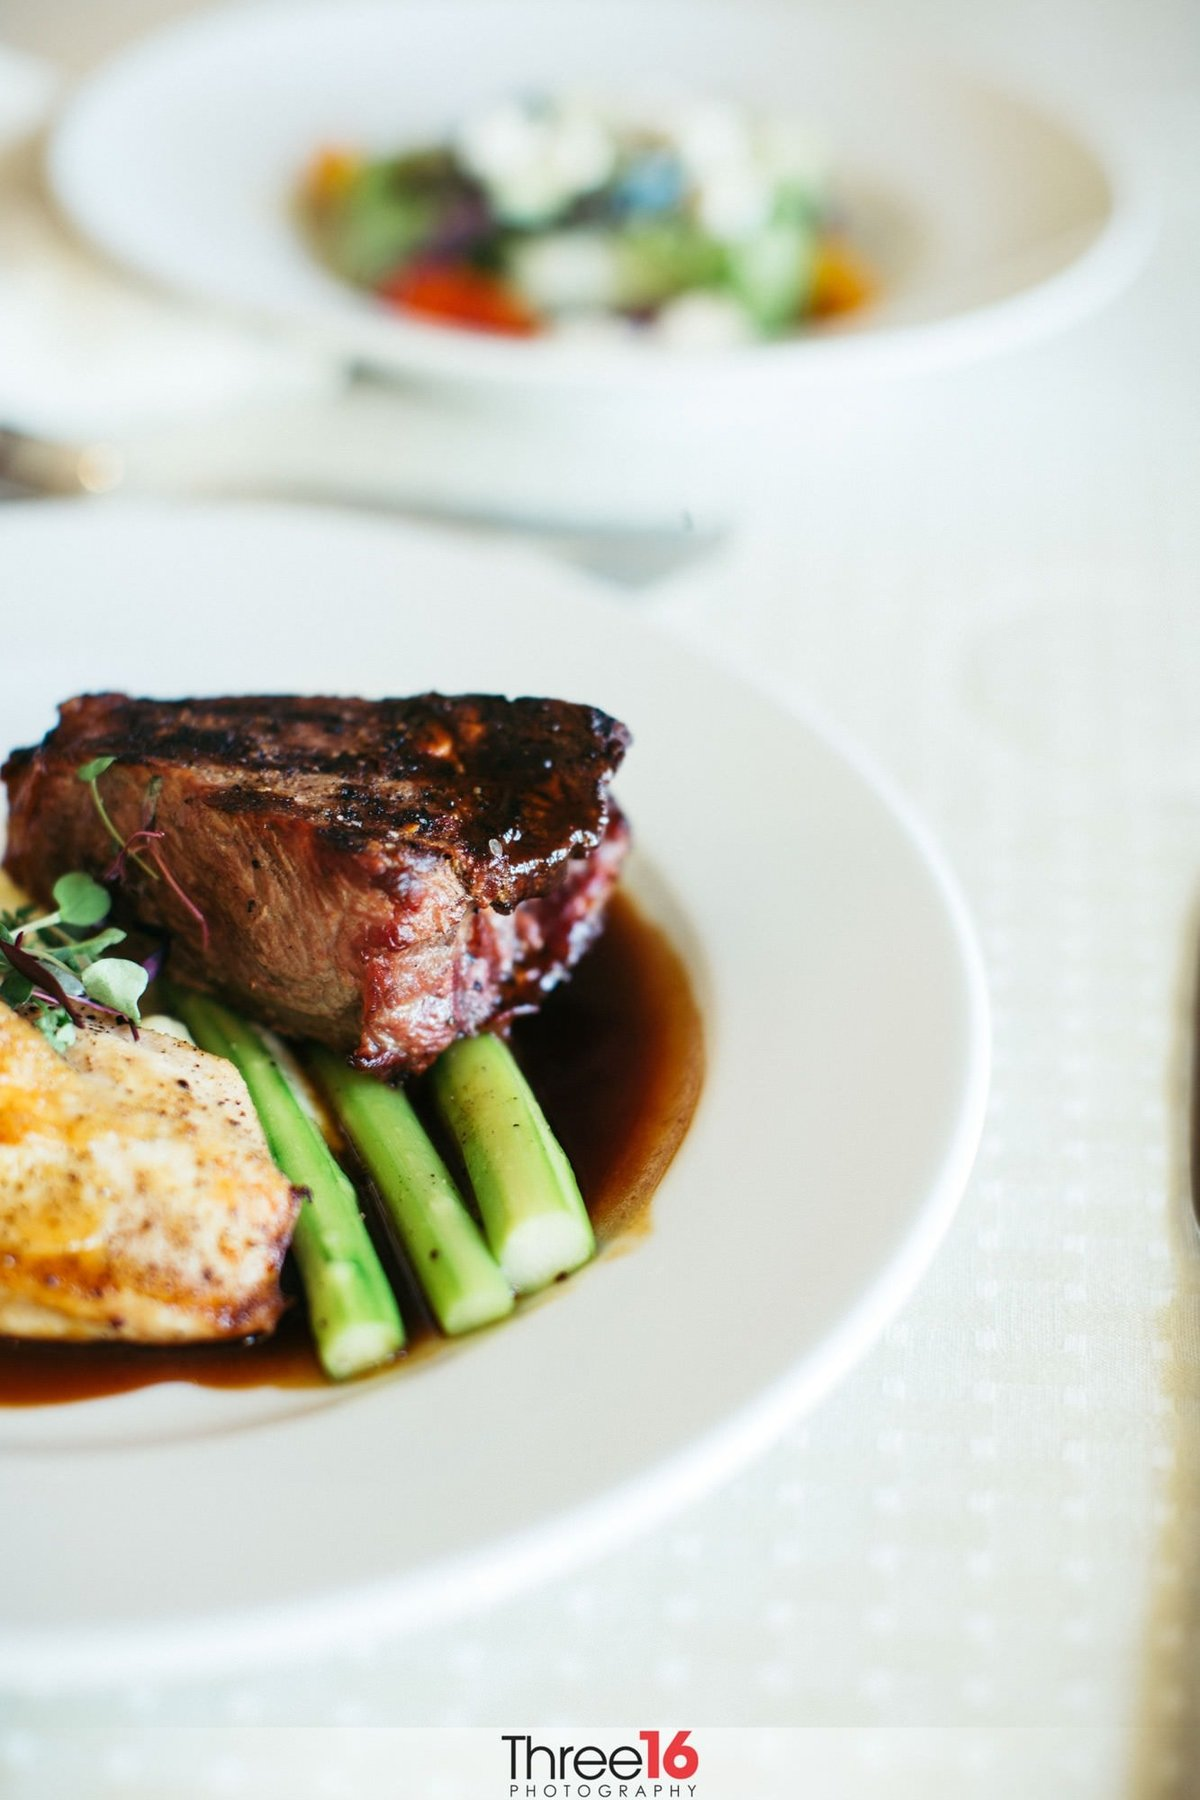 Steak and Asparagus is served at this wedding reception